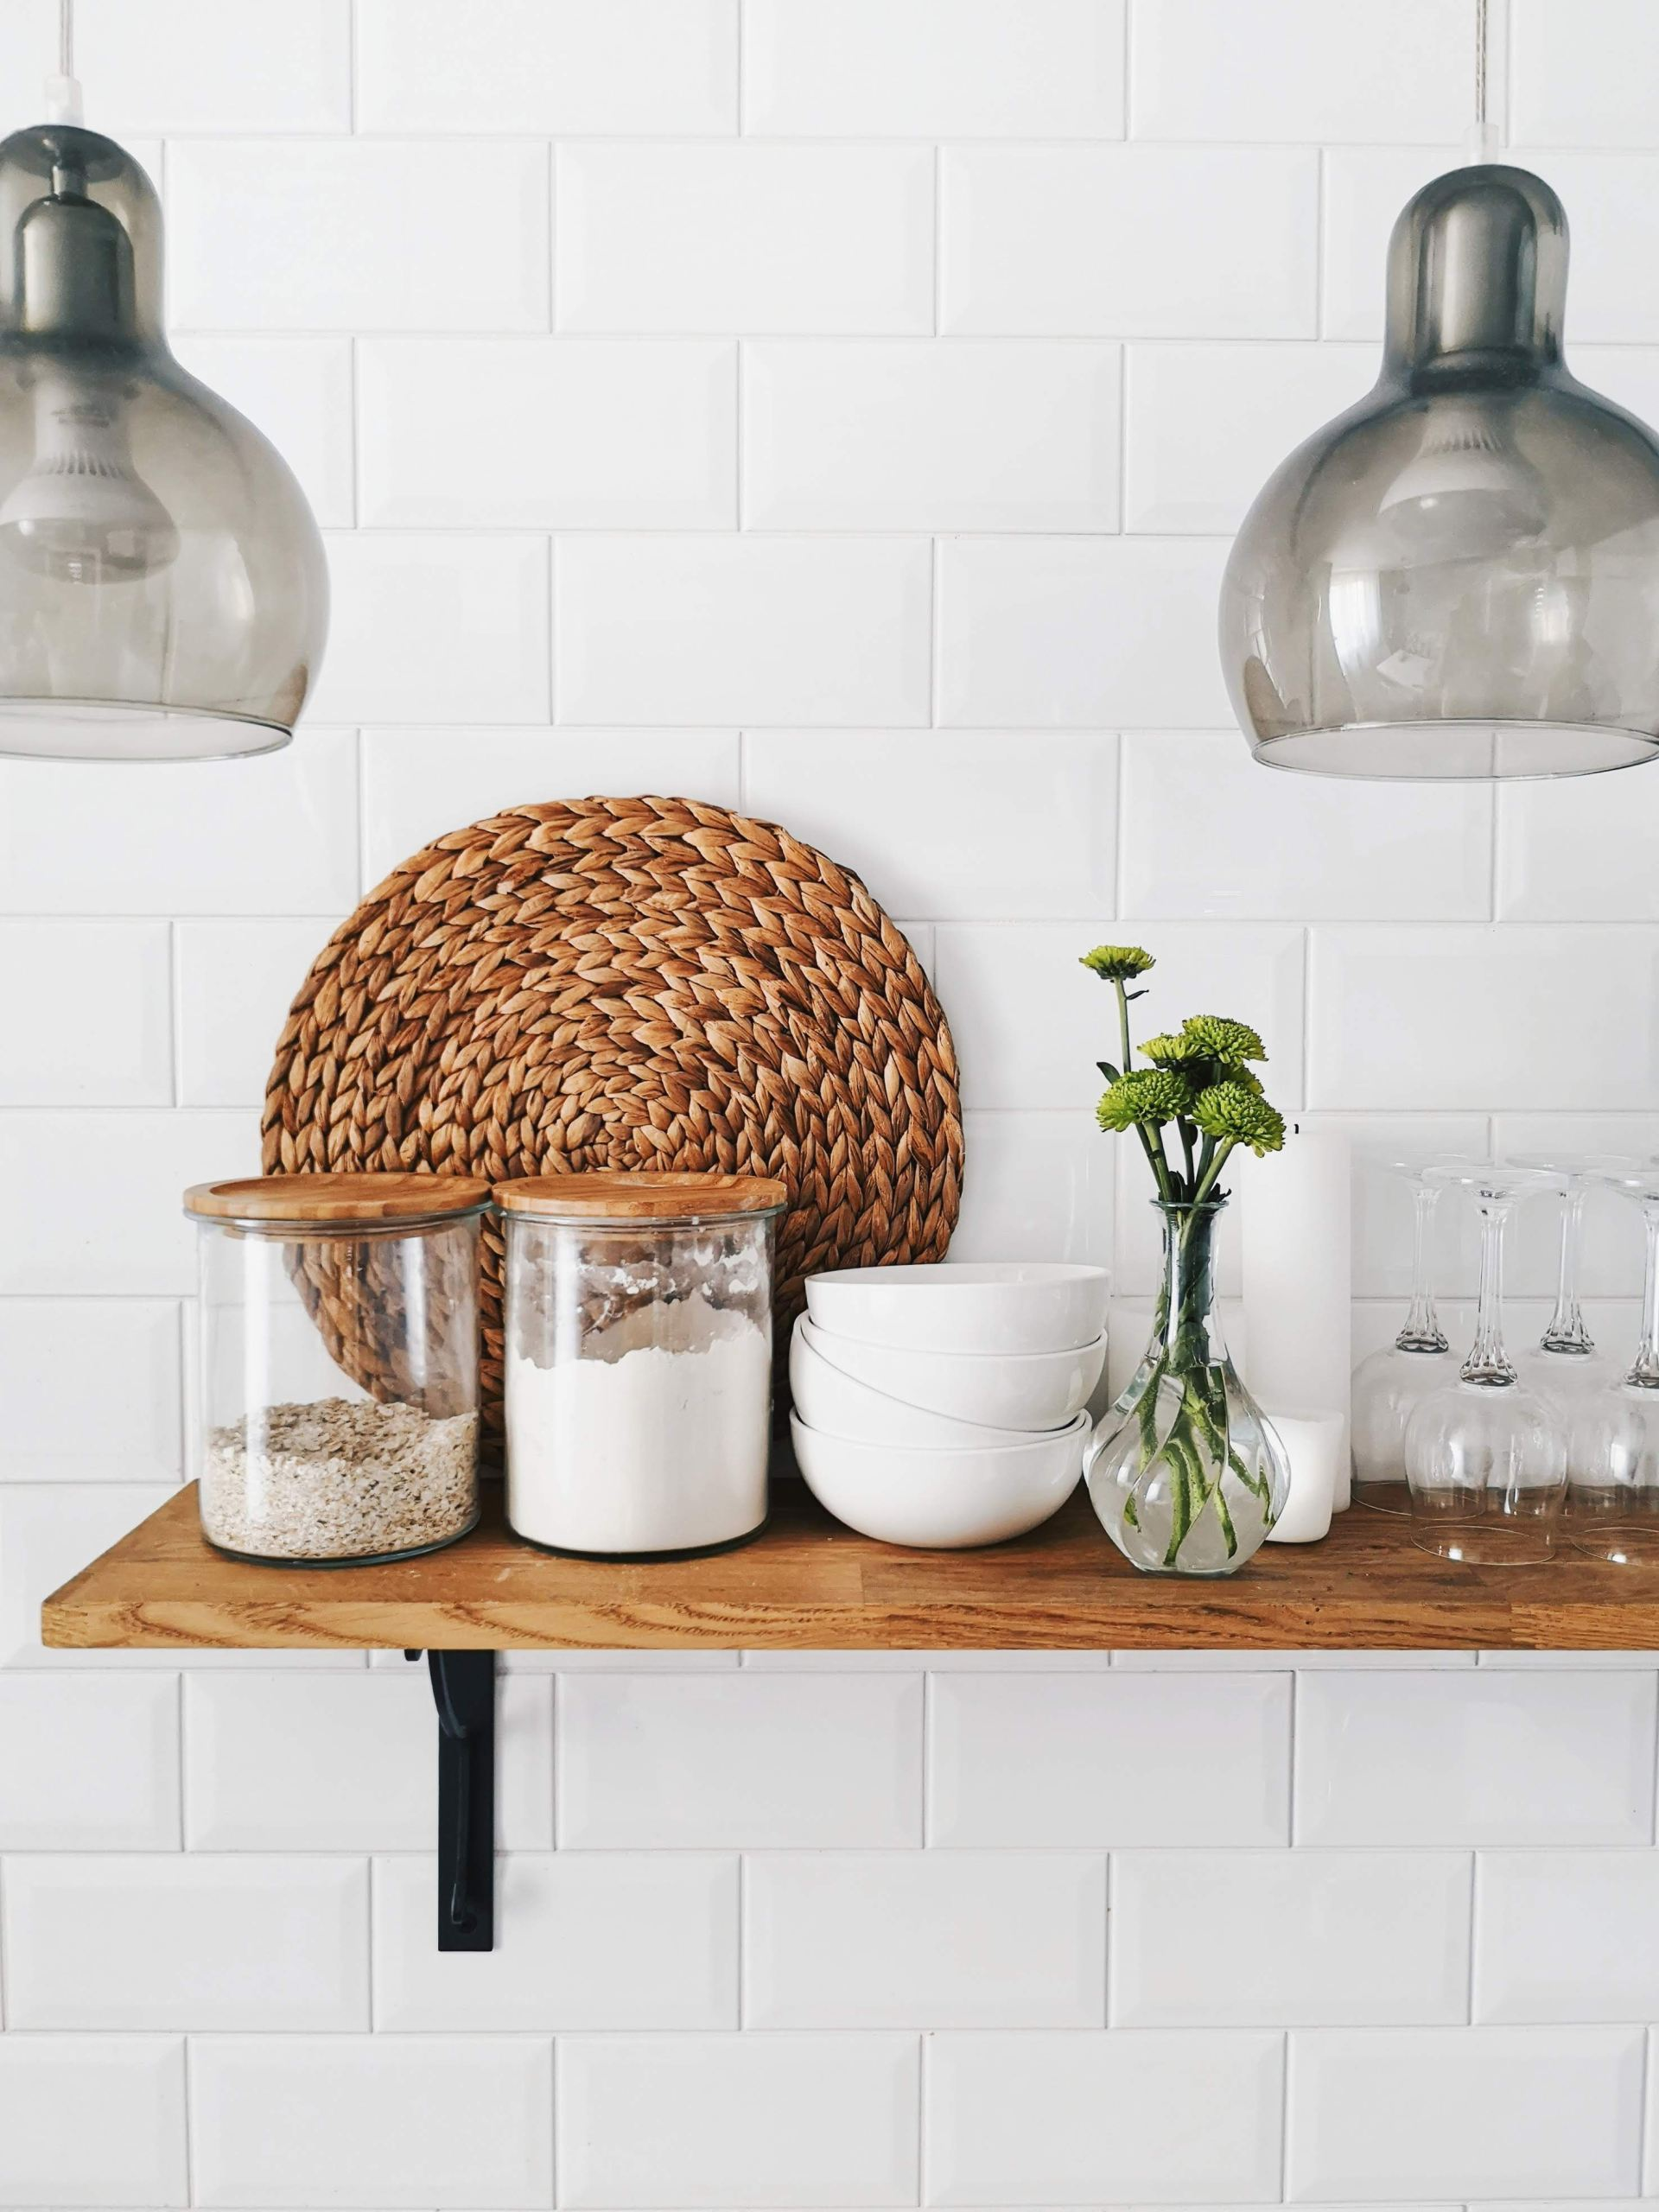 How to Have a Plastic Free (ish) kitchen?